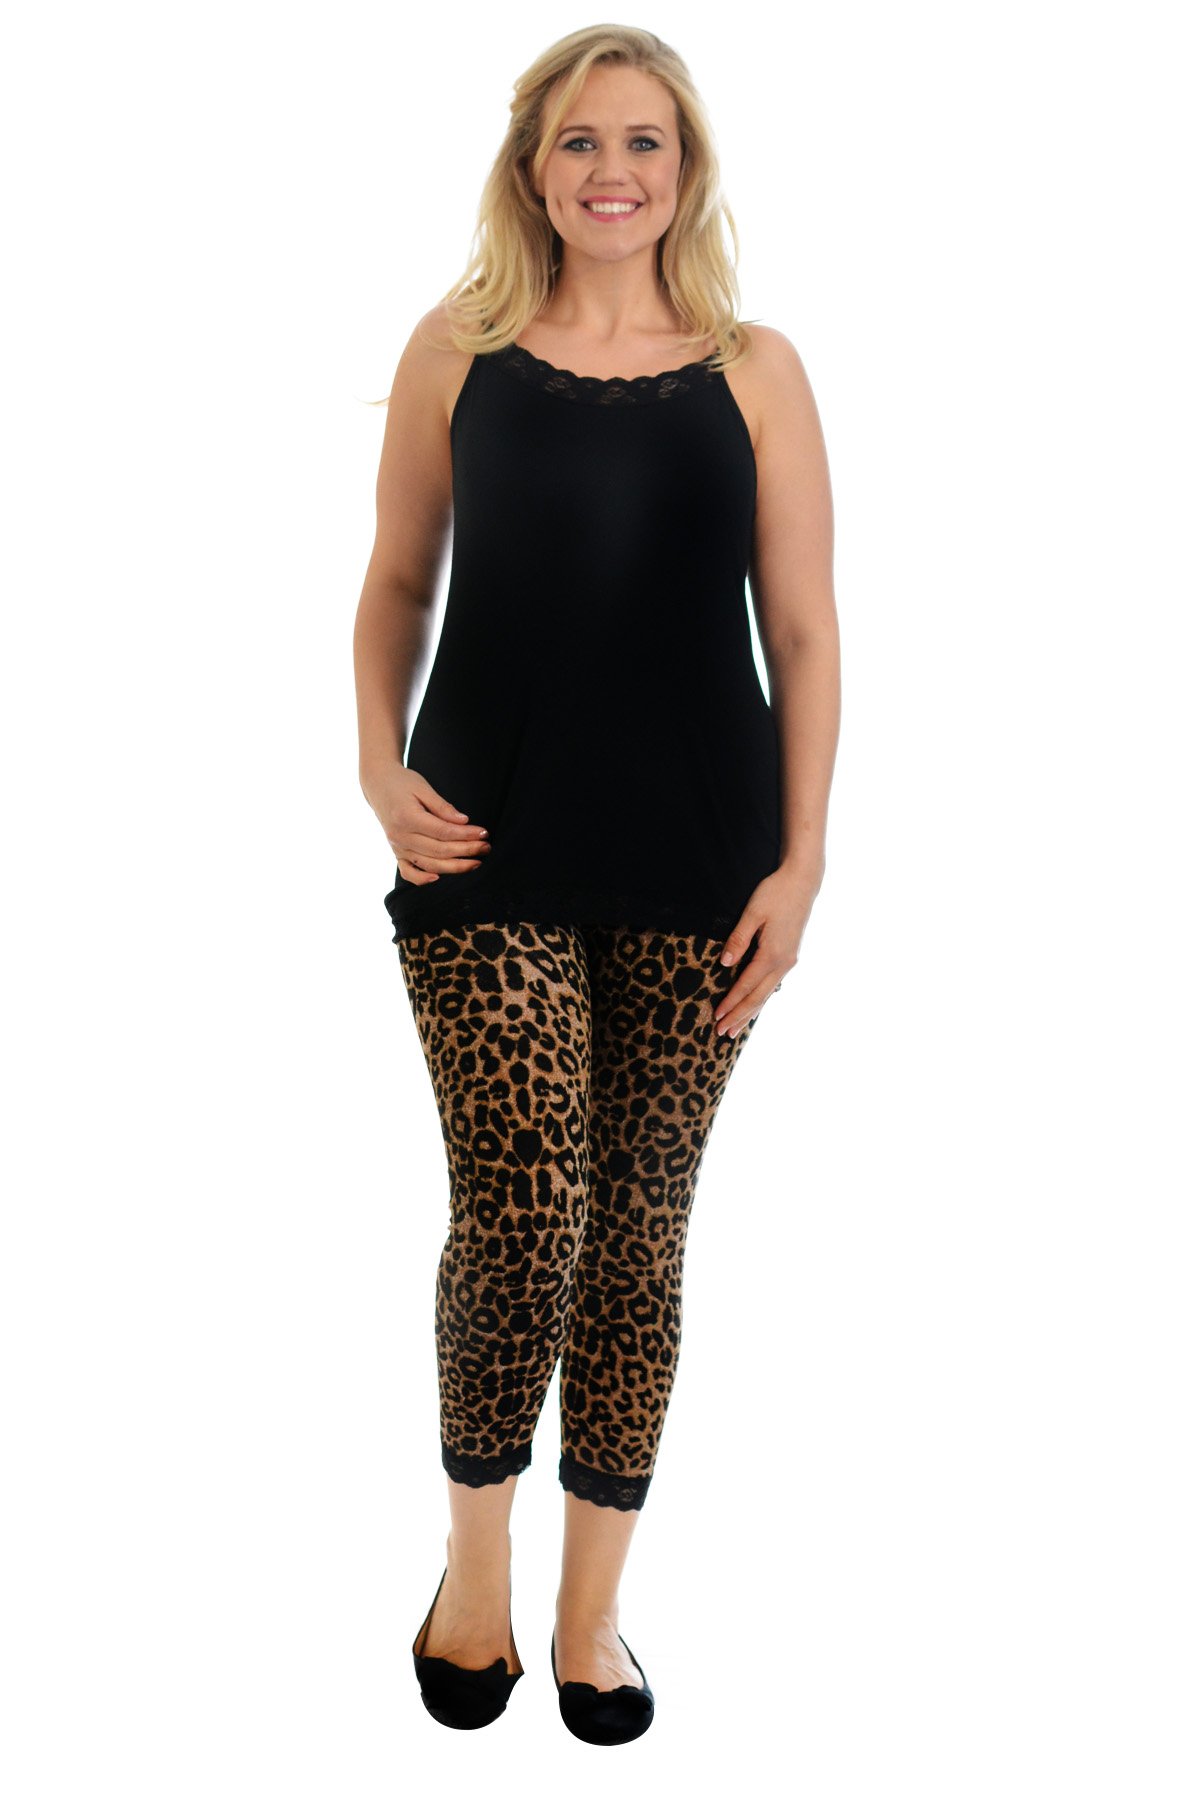 Plus size lace leggings - results from brands NYTEEZ, Just My Size, Bebe, products like HUE Lace Trim Shorts at Nordstrom Rack, Klutch NCAA Iowa State Cyclones Girls Toddler Ruffle Set, 5T, Red, Comfortview Neo Booties by - Women's Plus Size Clothing,